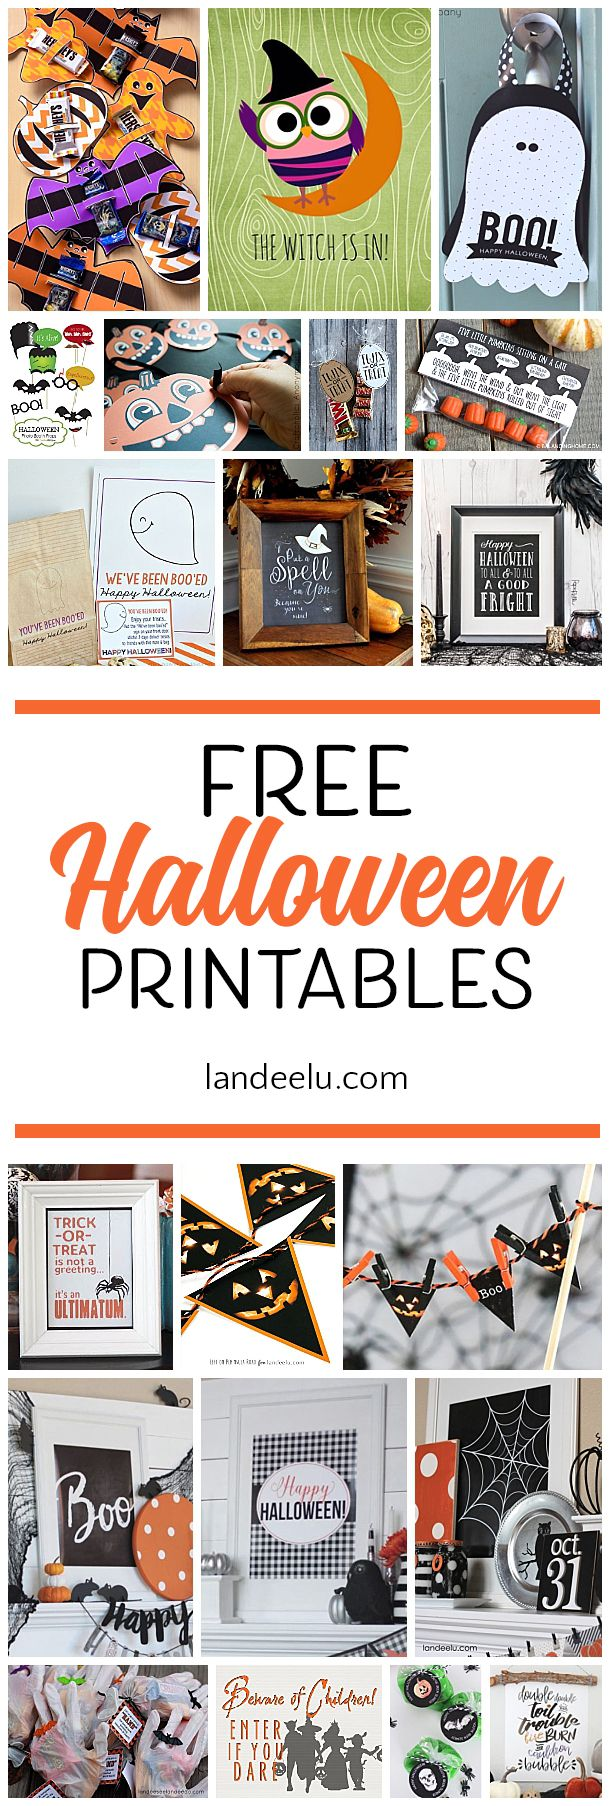 Tons of free Halloween printables to spookify your Halloween decor! #halloweenprintables #halloweendecorations